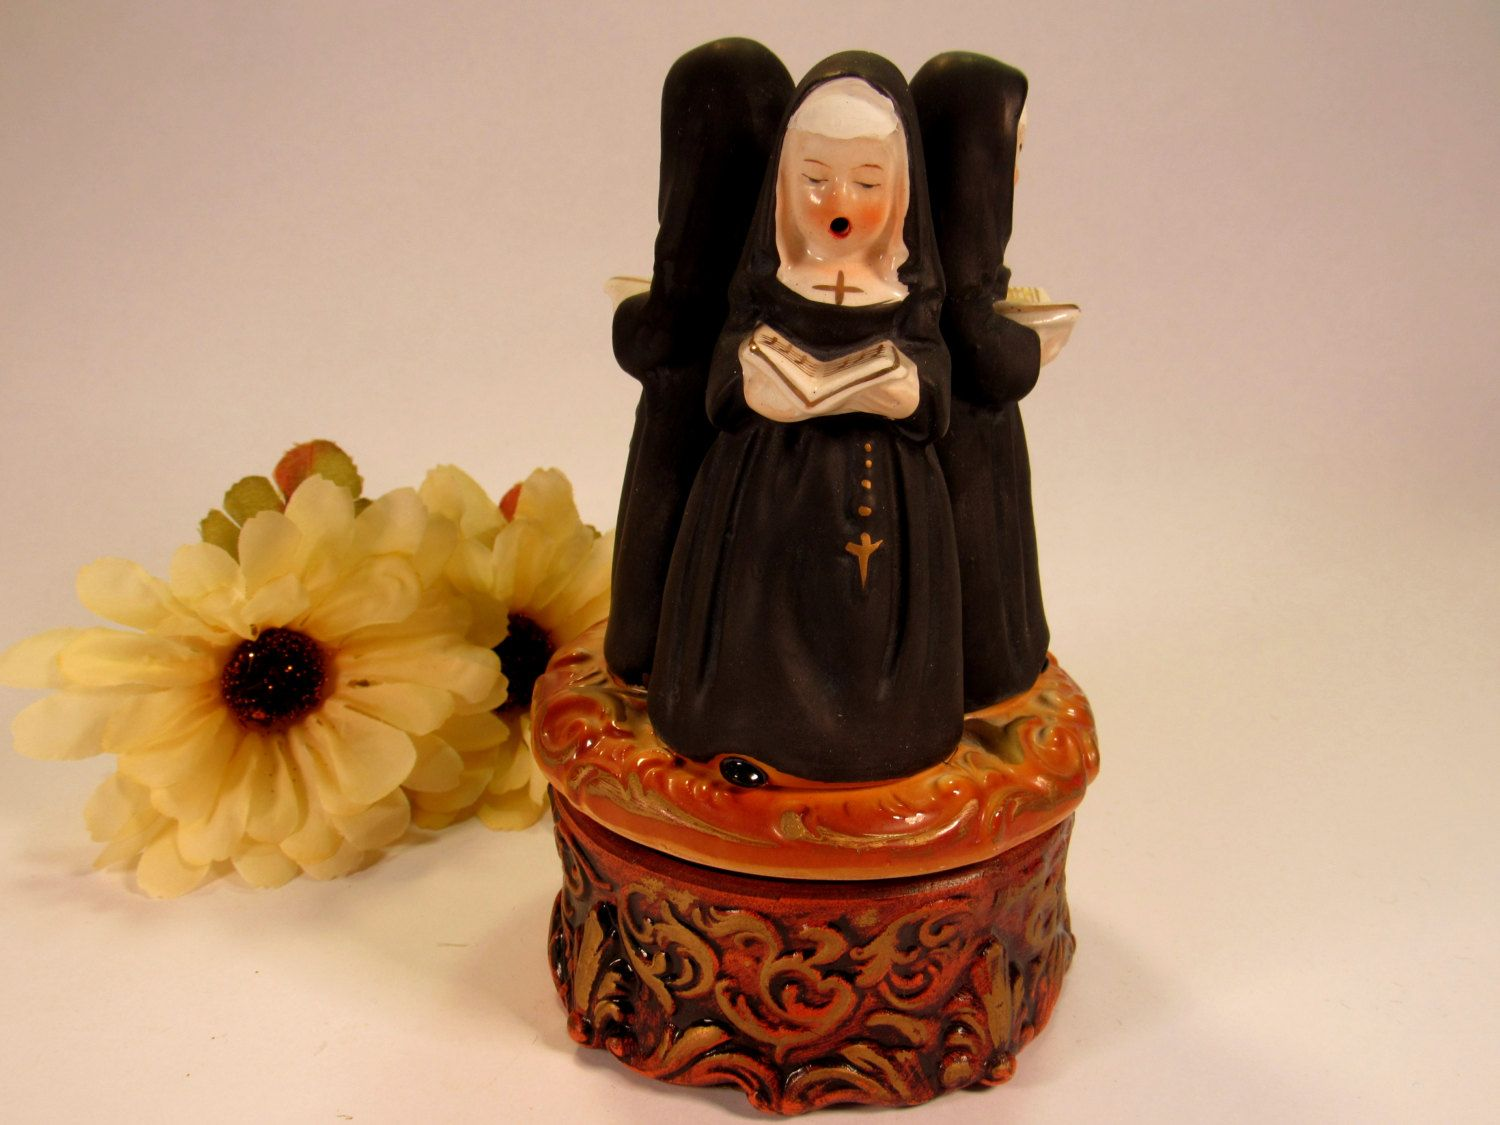 Vintage Price Rotating Music Box with 3 Nuns  Singing with On Off Lever. The…